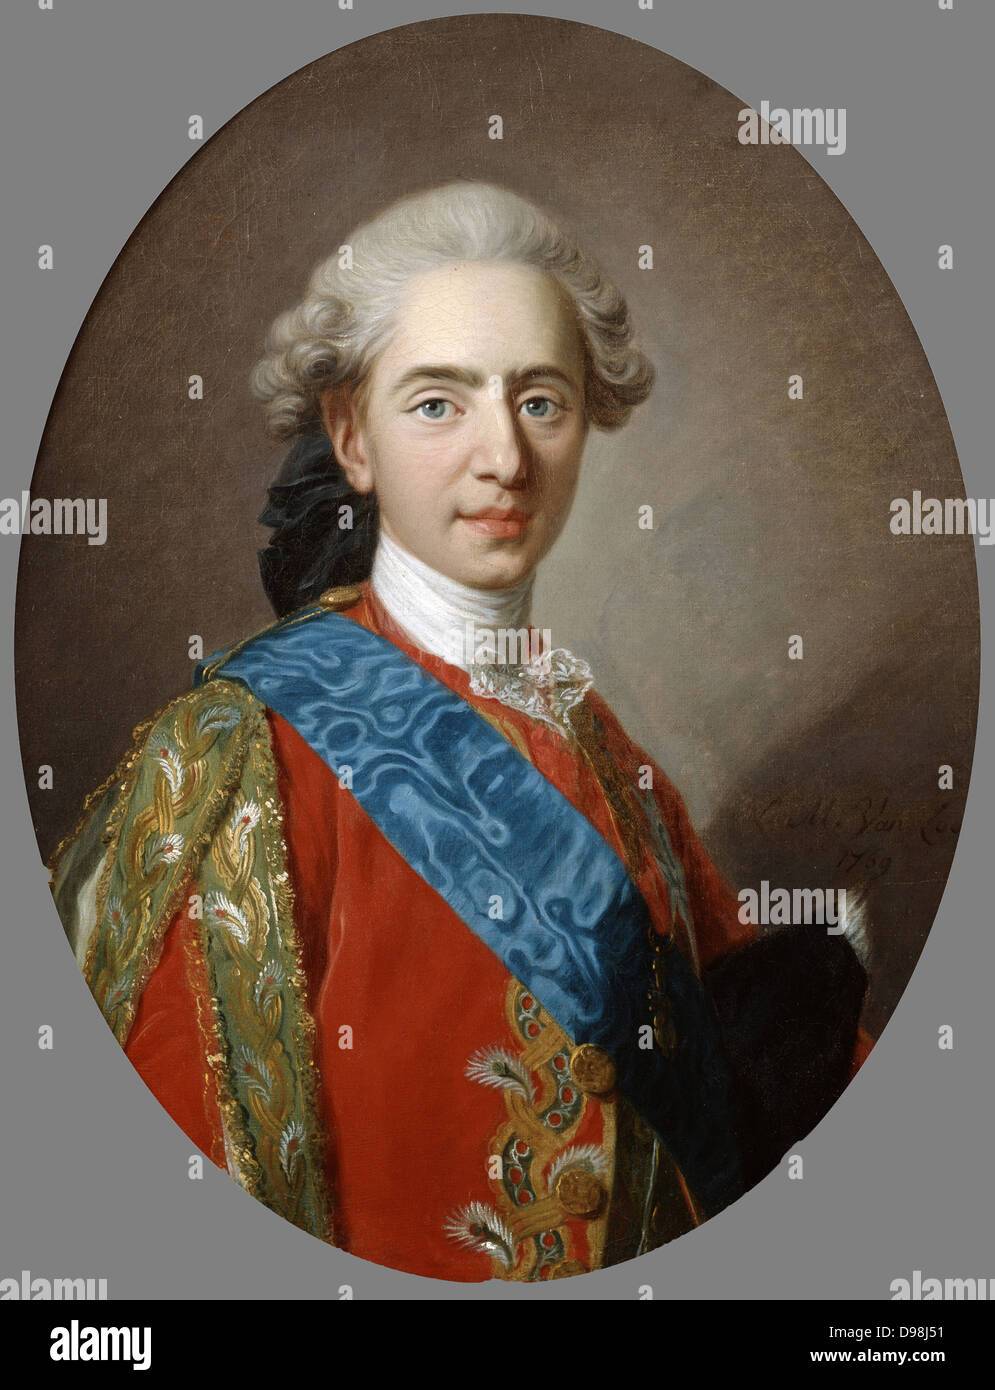 Louis XVI (1754-1793) king of France from 1774 until guillotined during the French Revolution. Louis while still - Stock Image